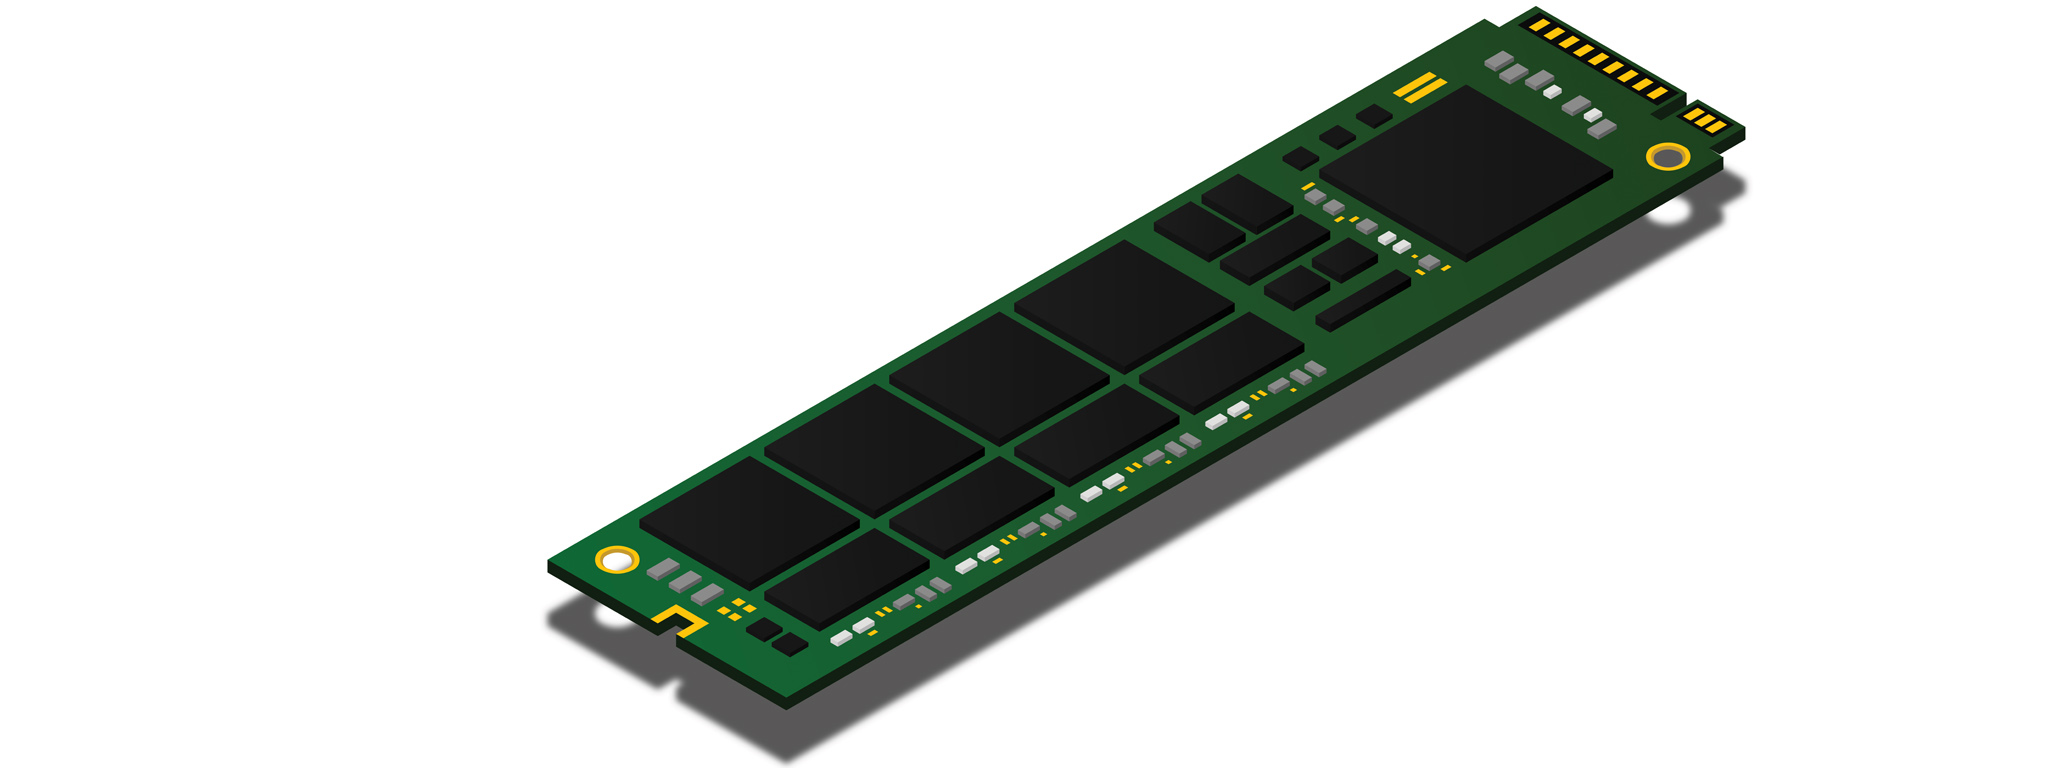 2 Types of M.2 SSDs: SATA and NVMe